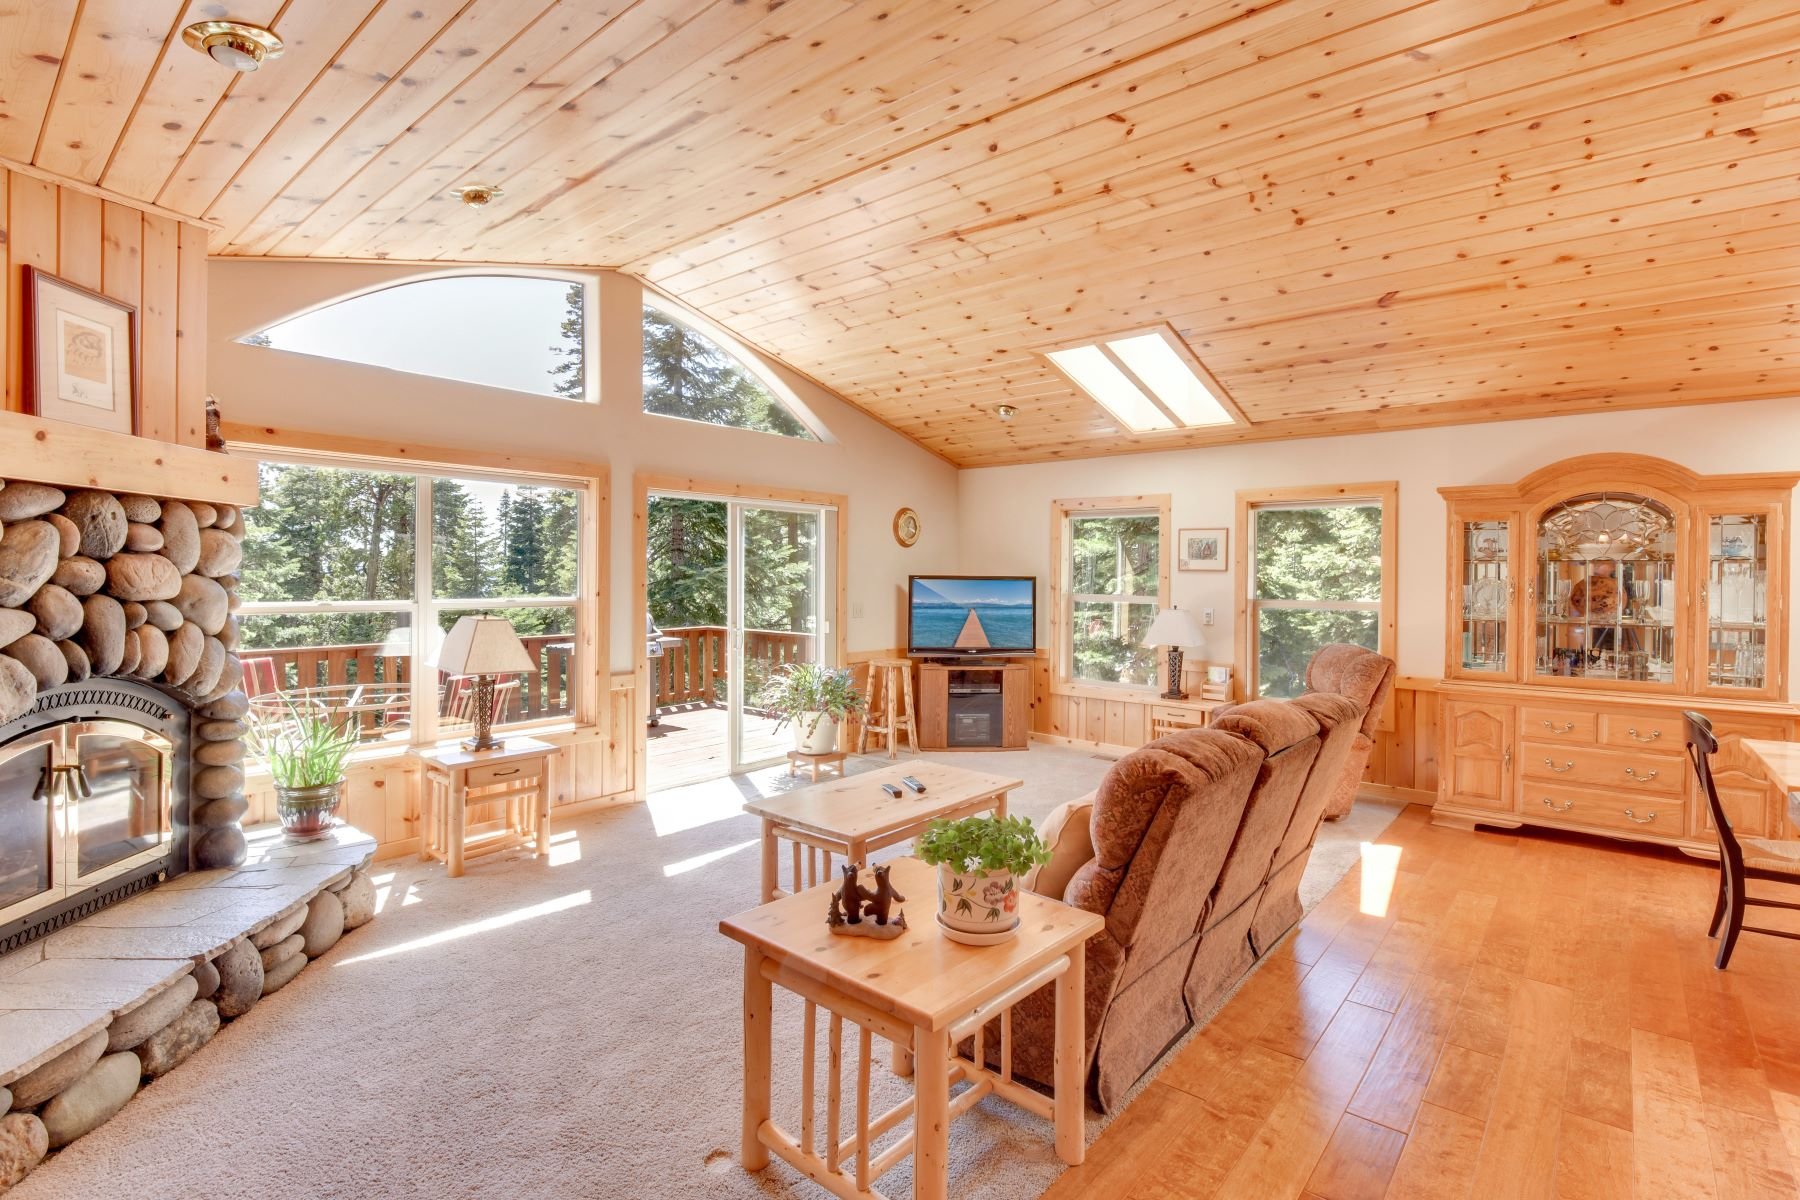 Single Family Home for Active at 267 Laurel Drive, Tahoe Vista, CA 96148 267 Laurel Drive Tahoe Vista, California 96148 United States